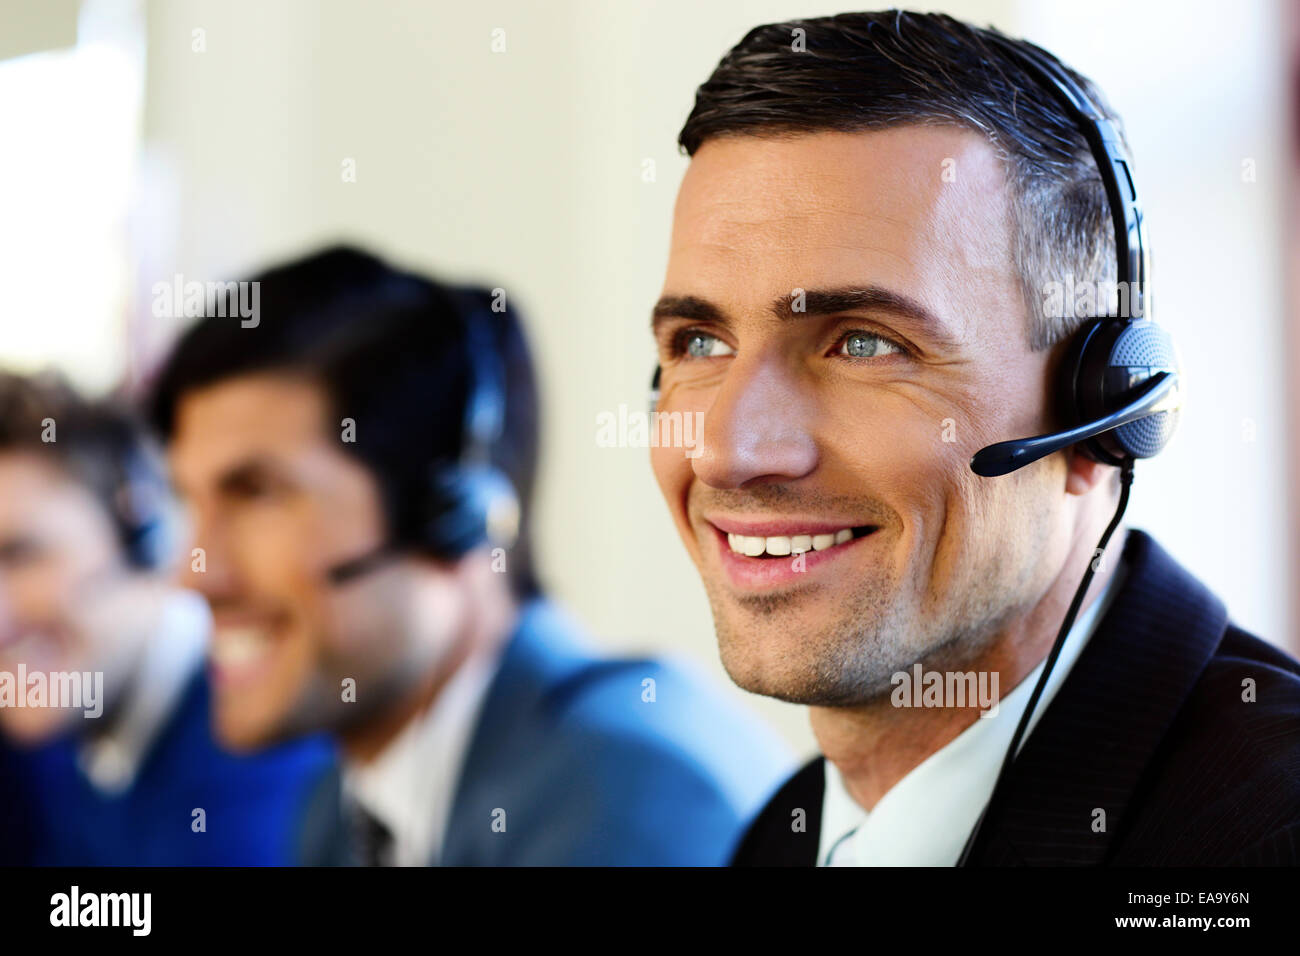 Attractive positive young businesspeople and colleagues in a call center office - Stock Image